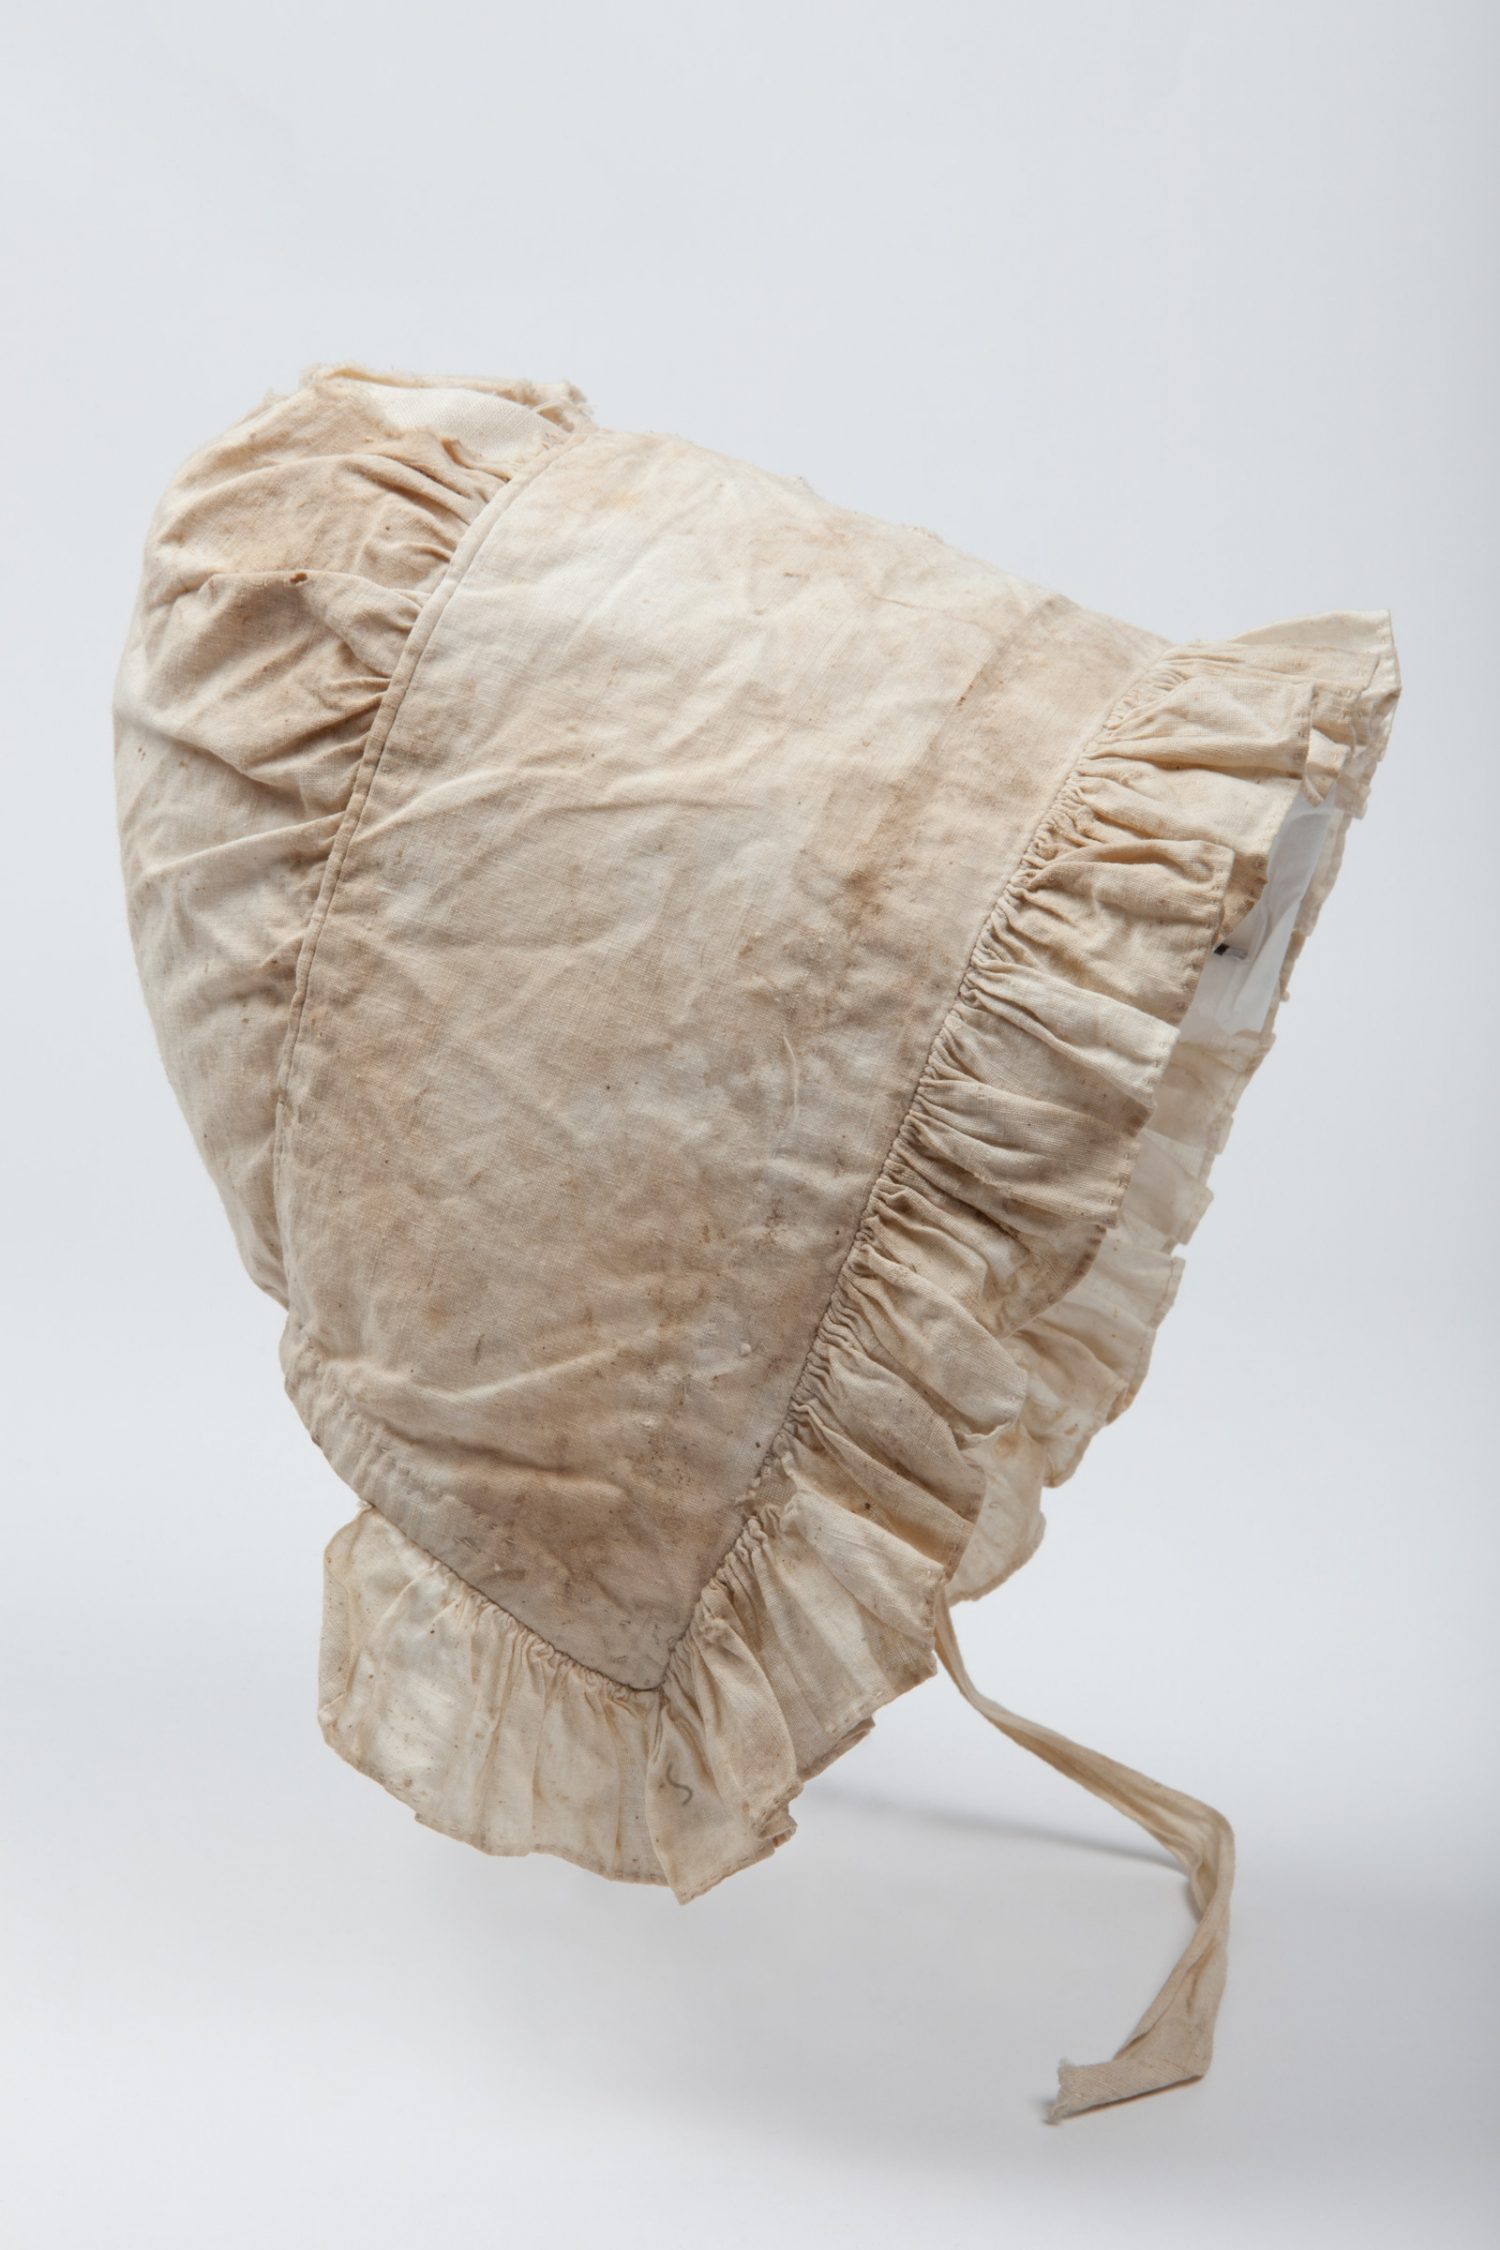 Asylum bonnet from Hyde Park Barracks Museum archaeology collection